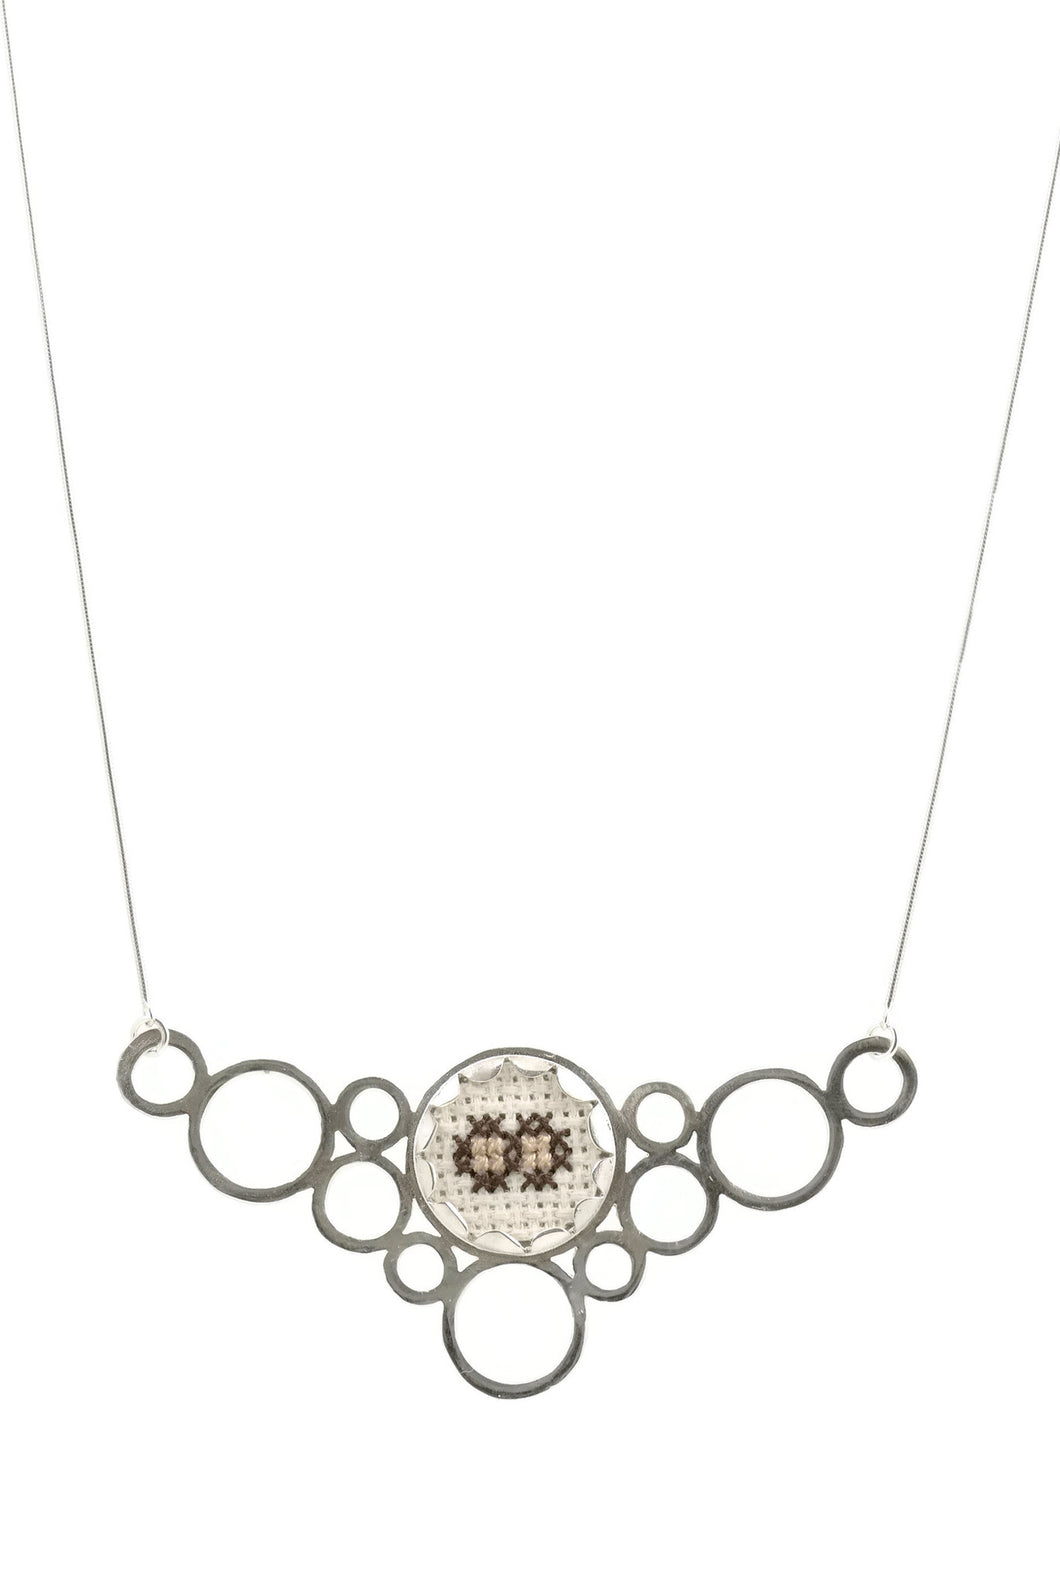 Sterling silver necklace - circles and traditional Arabic embroidery